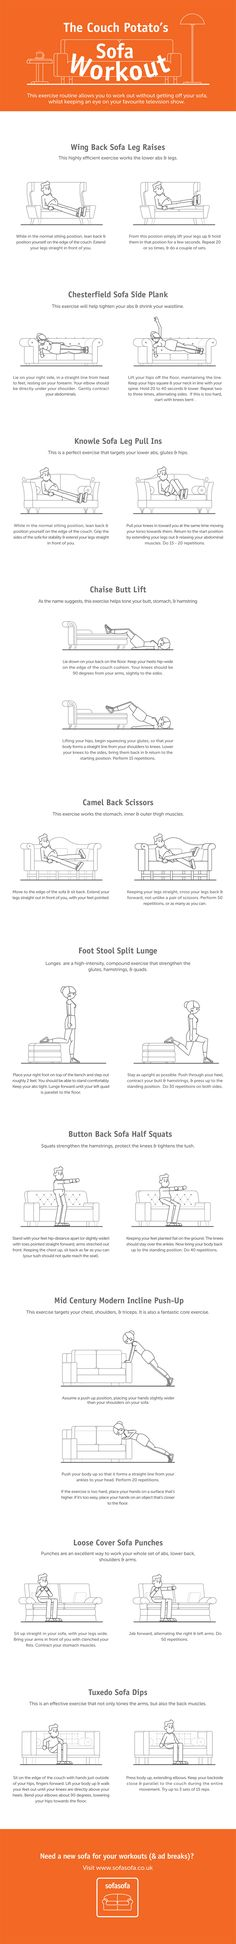 The Couch Potato's Sofa Workout contains 10 simple exercises you can complete in 30 minutes or less, for a full-body workout. This is no gimmick routine either. These are proper gym exercises translated from the workout bench to the couch. So put down the remote control and packet of crisps for a second and give it a go - even if it's just during that lame toothpaste commercial you've seen 100 times... #infographic